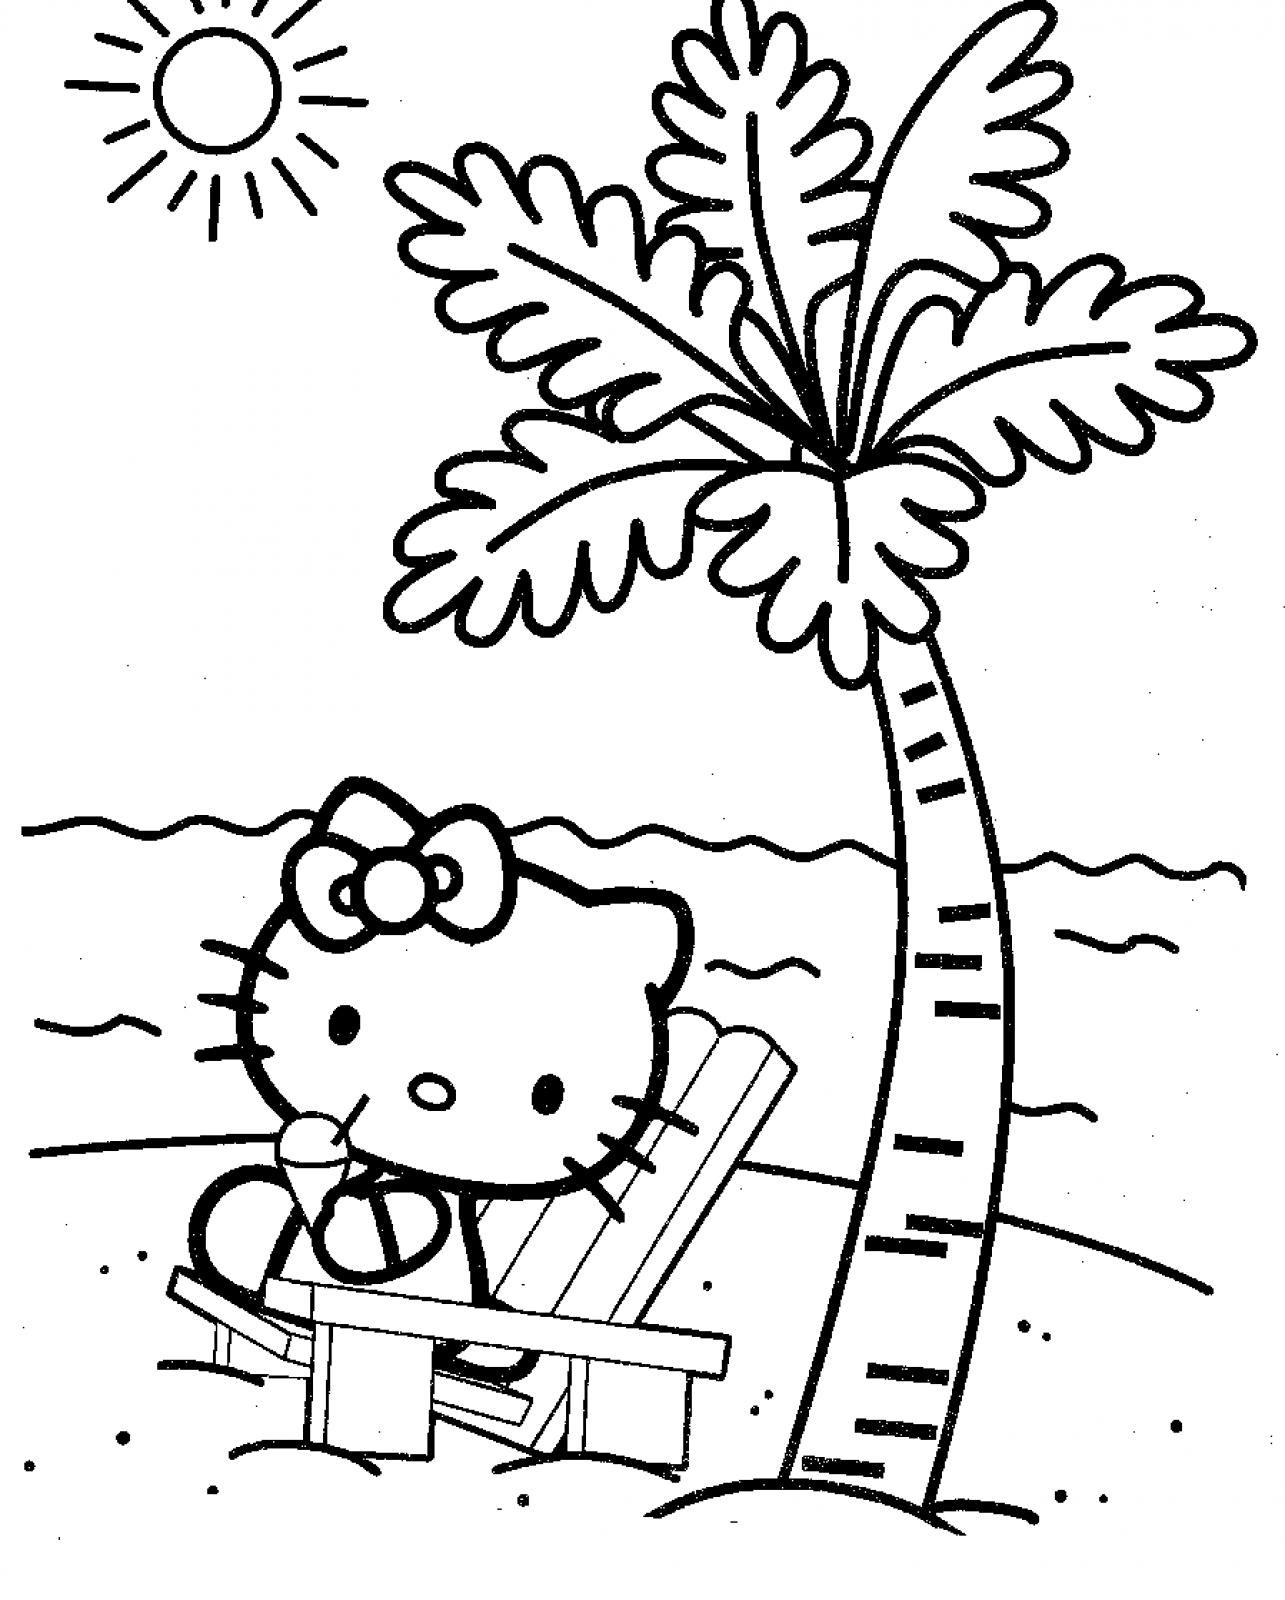 Colouring in pictures for toddlers - Cute Hello Kitty Coloring Pages Your Toddlers Will Love